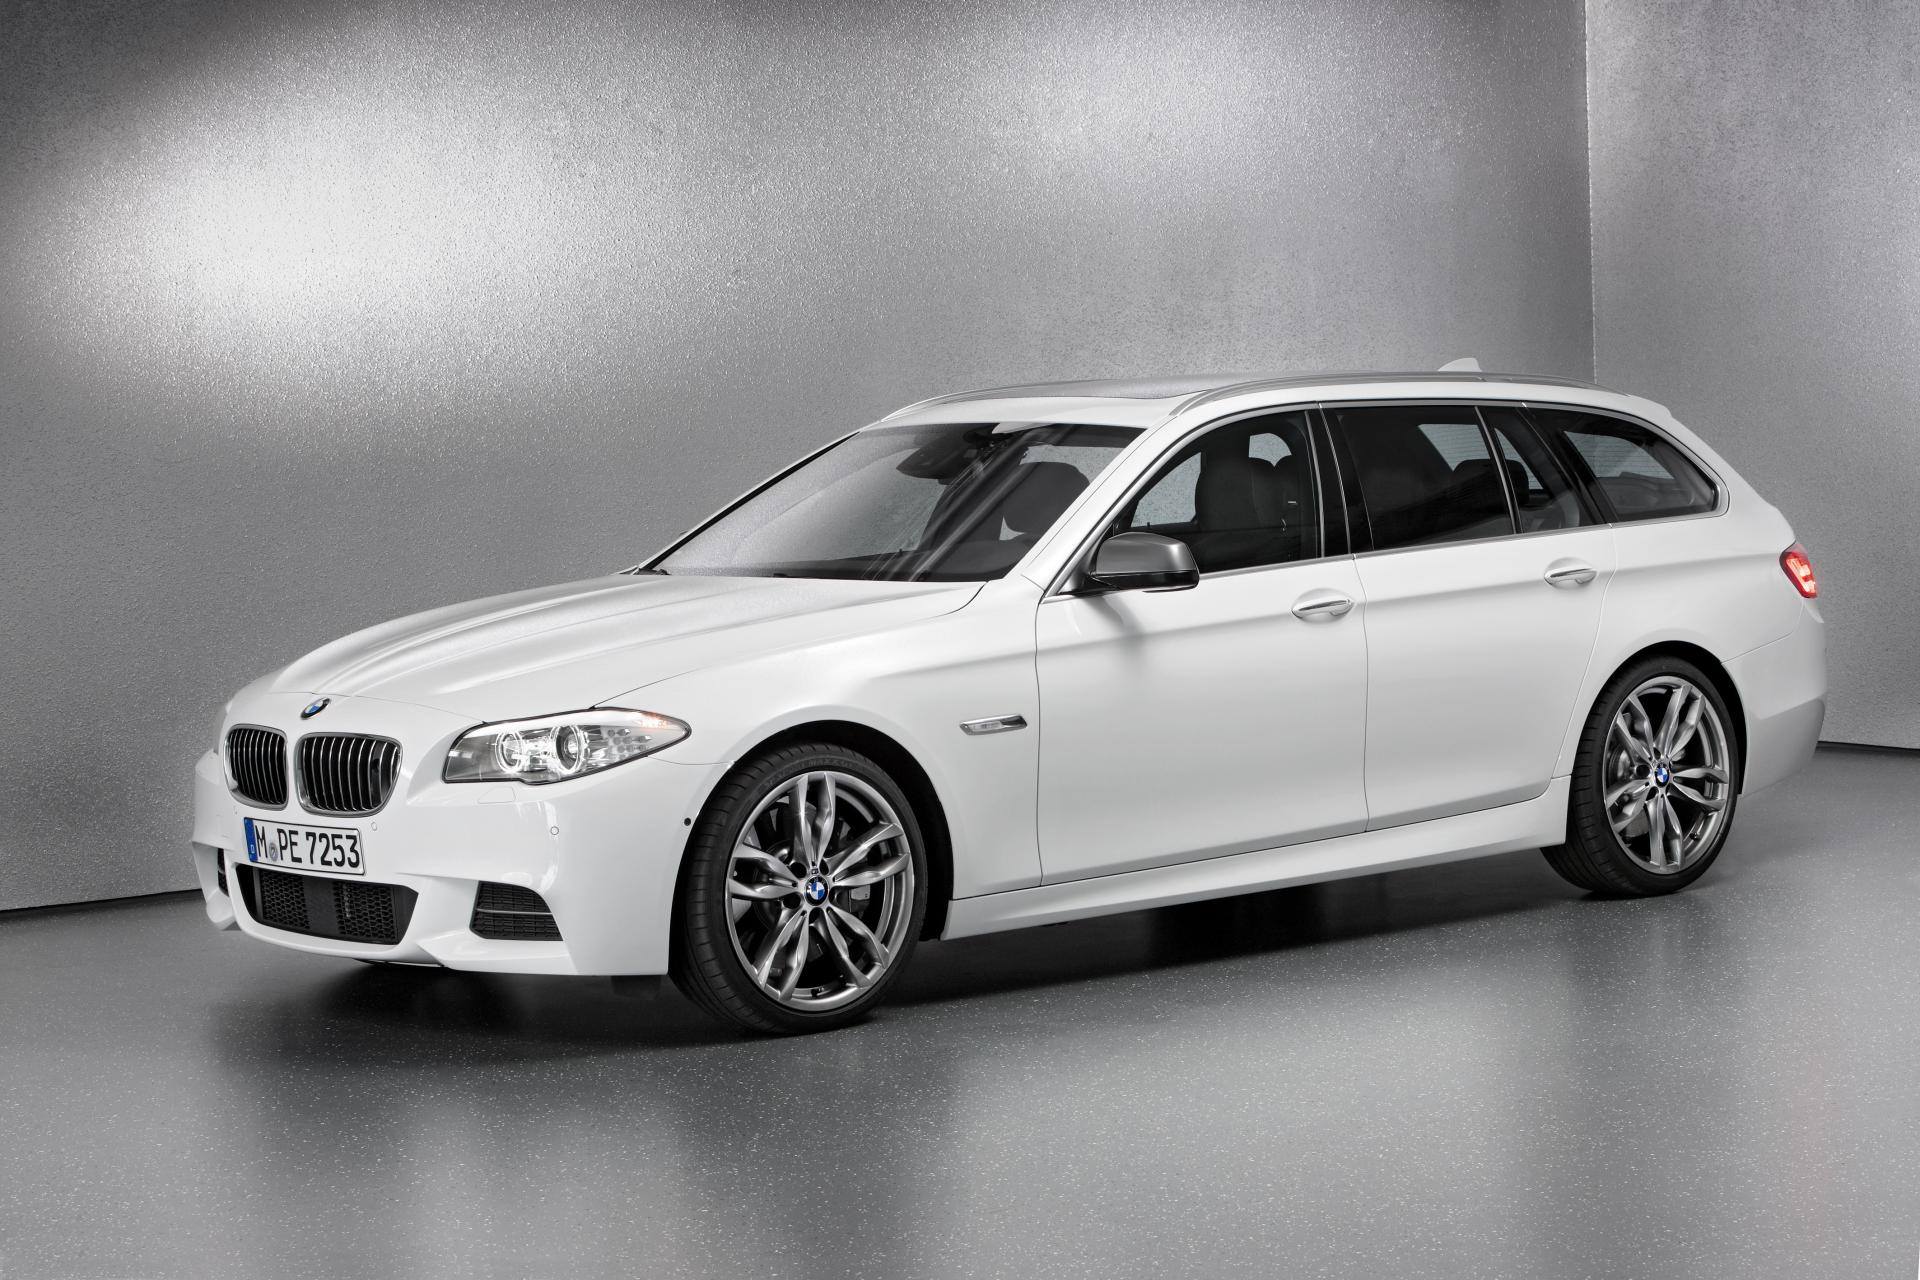 2012 bmw m550d xdrive touring news and information. Black Bedroom Furniture Sets. Home Design Ideas